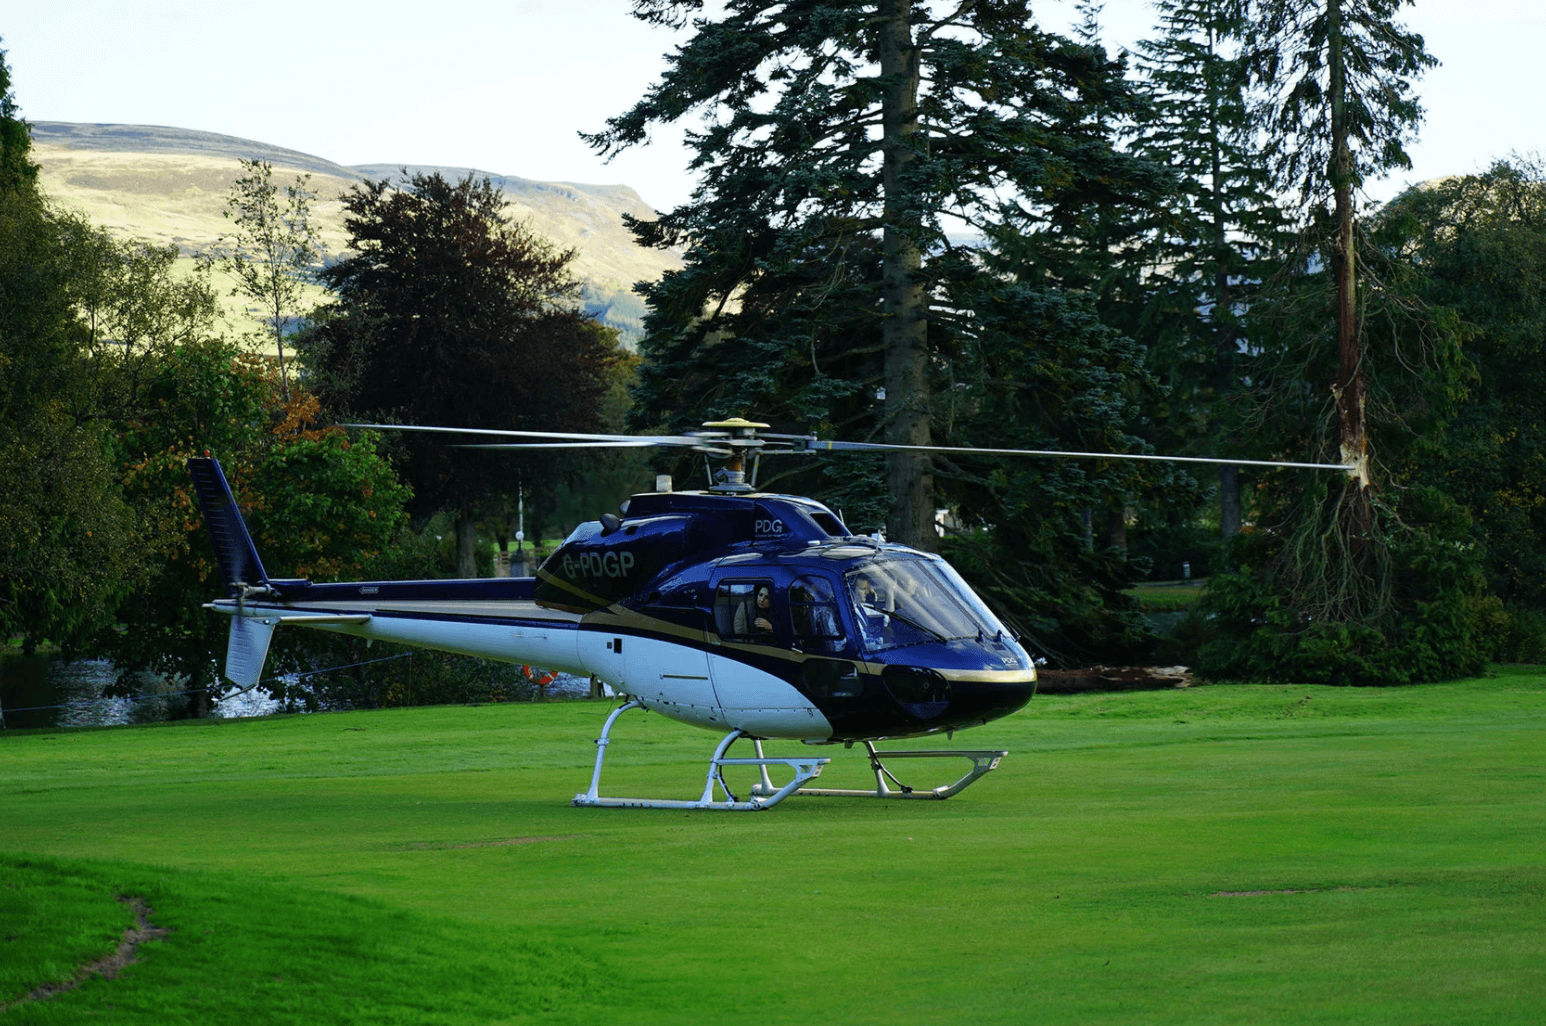 Helicopter on Lawn'